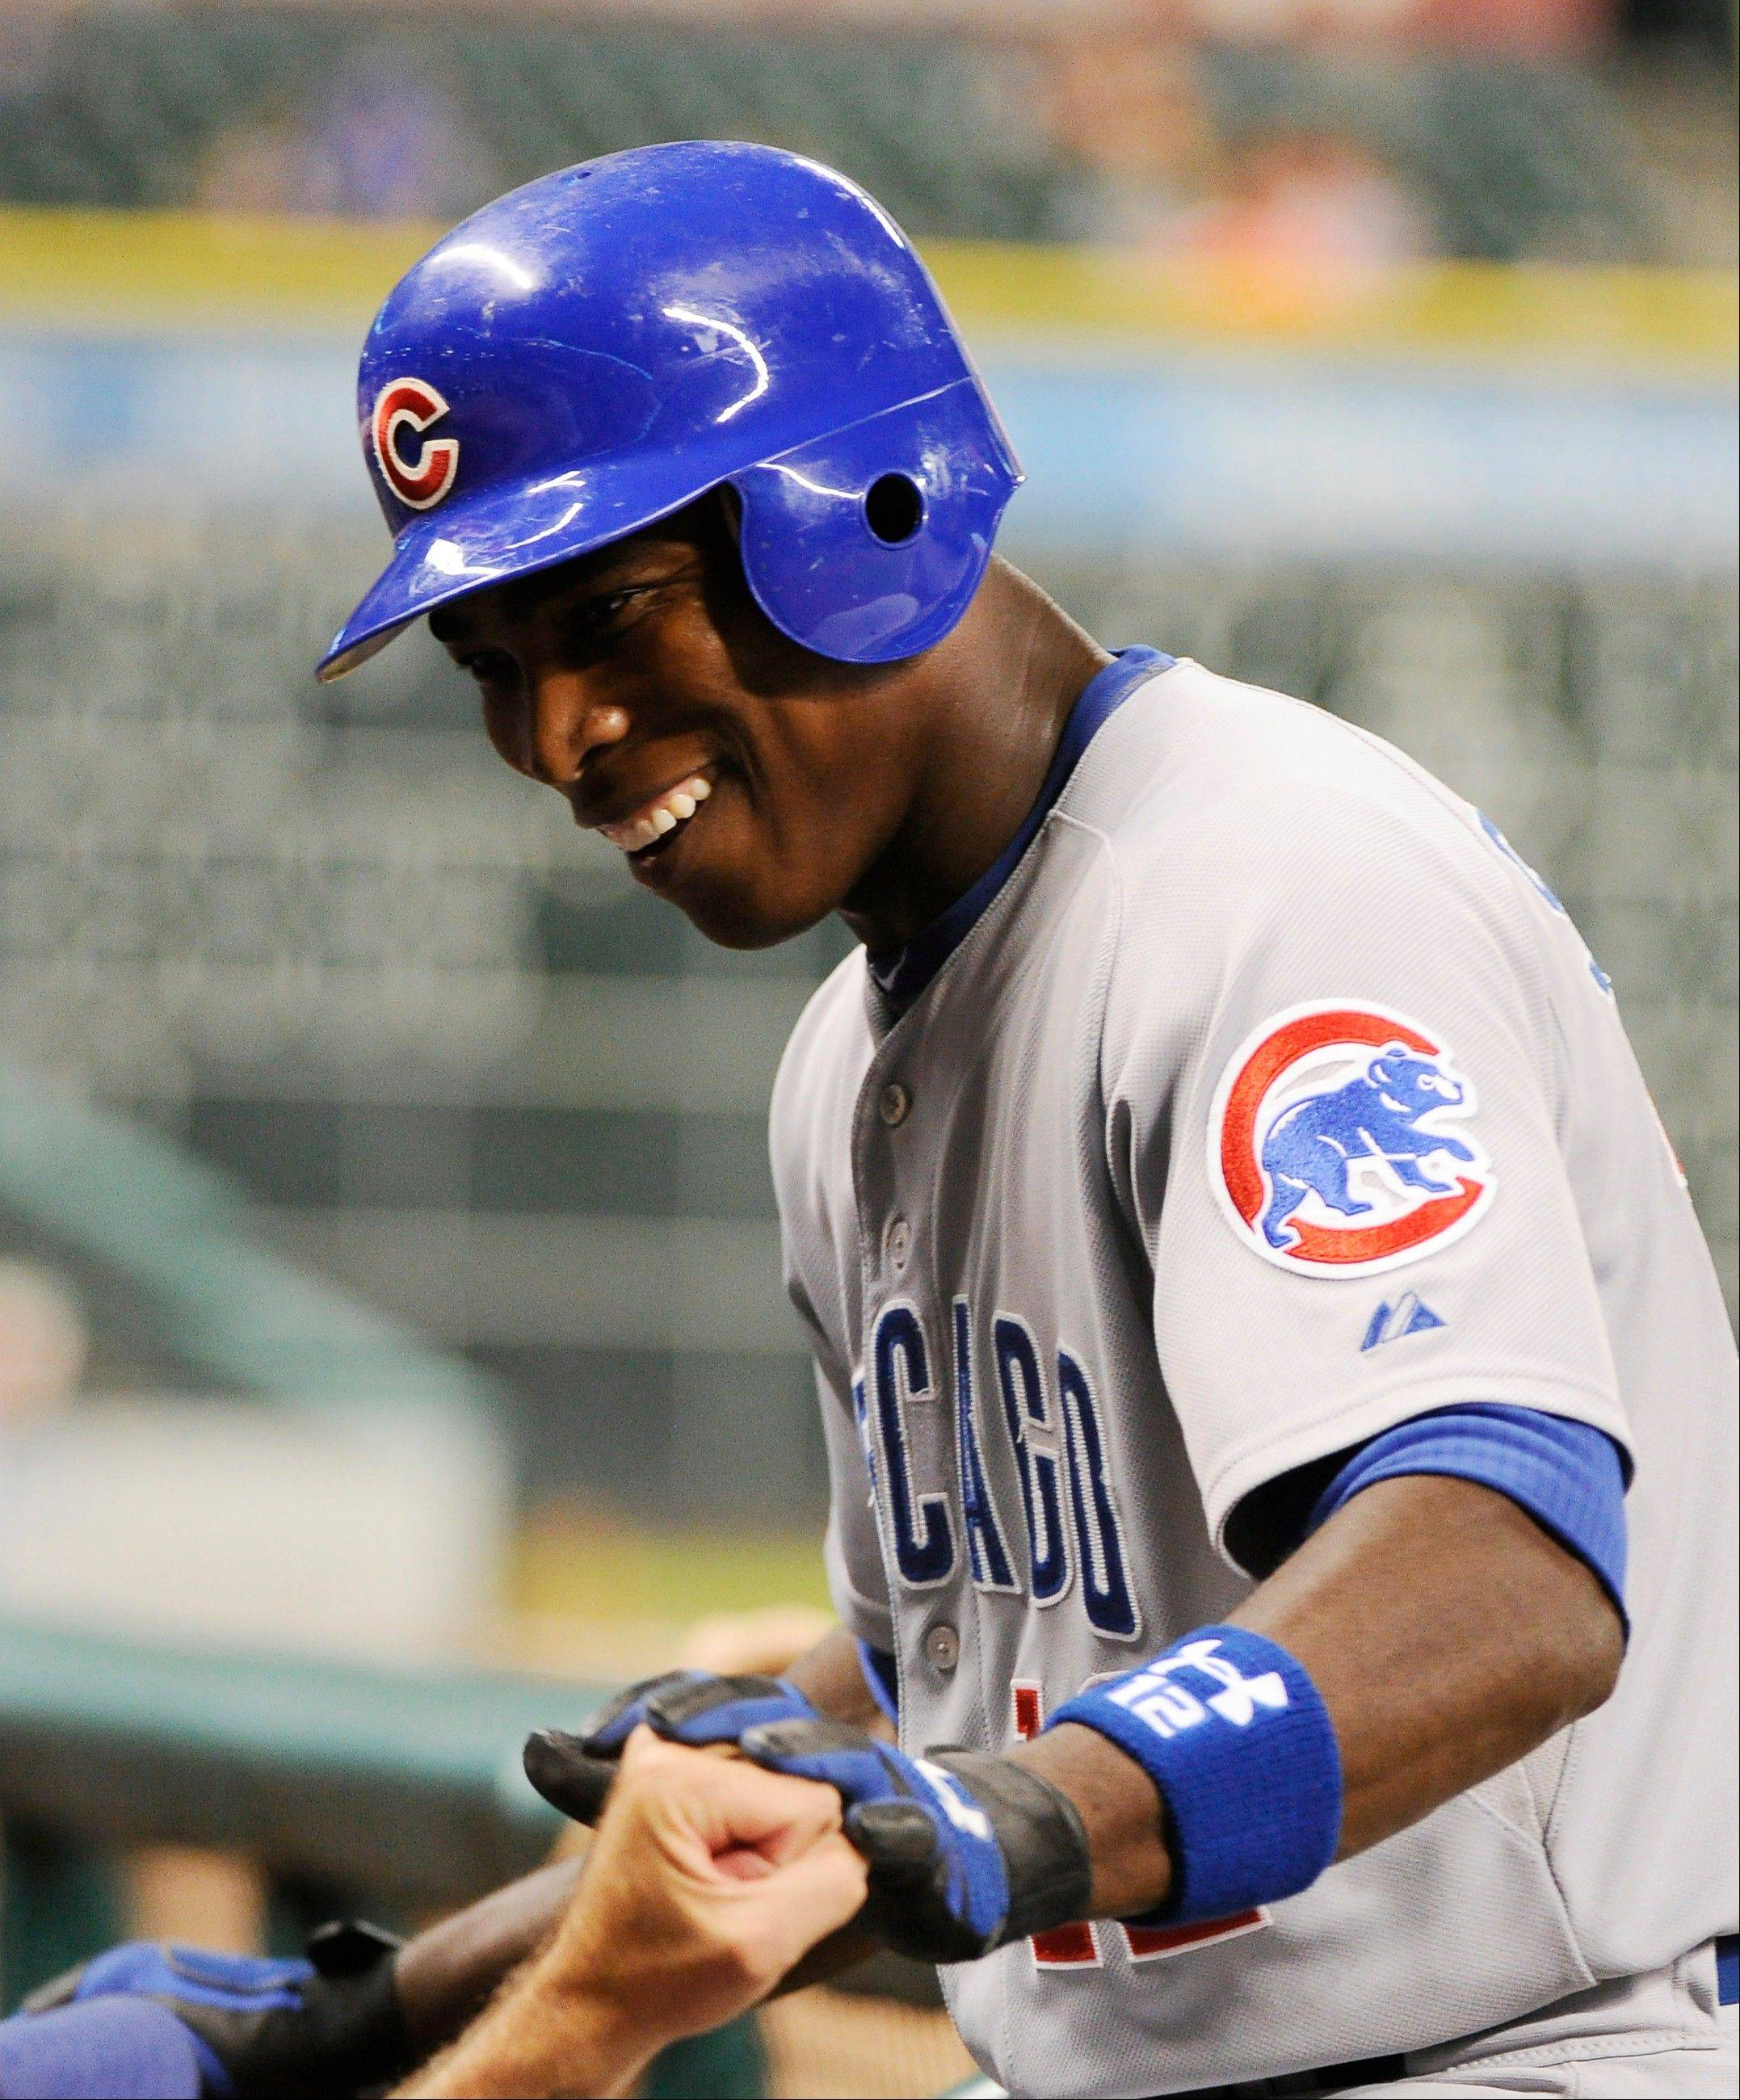 Alfonso Soriano might be getting MVP consideration if he were playing for a winning team.